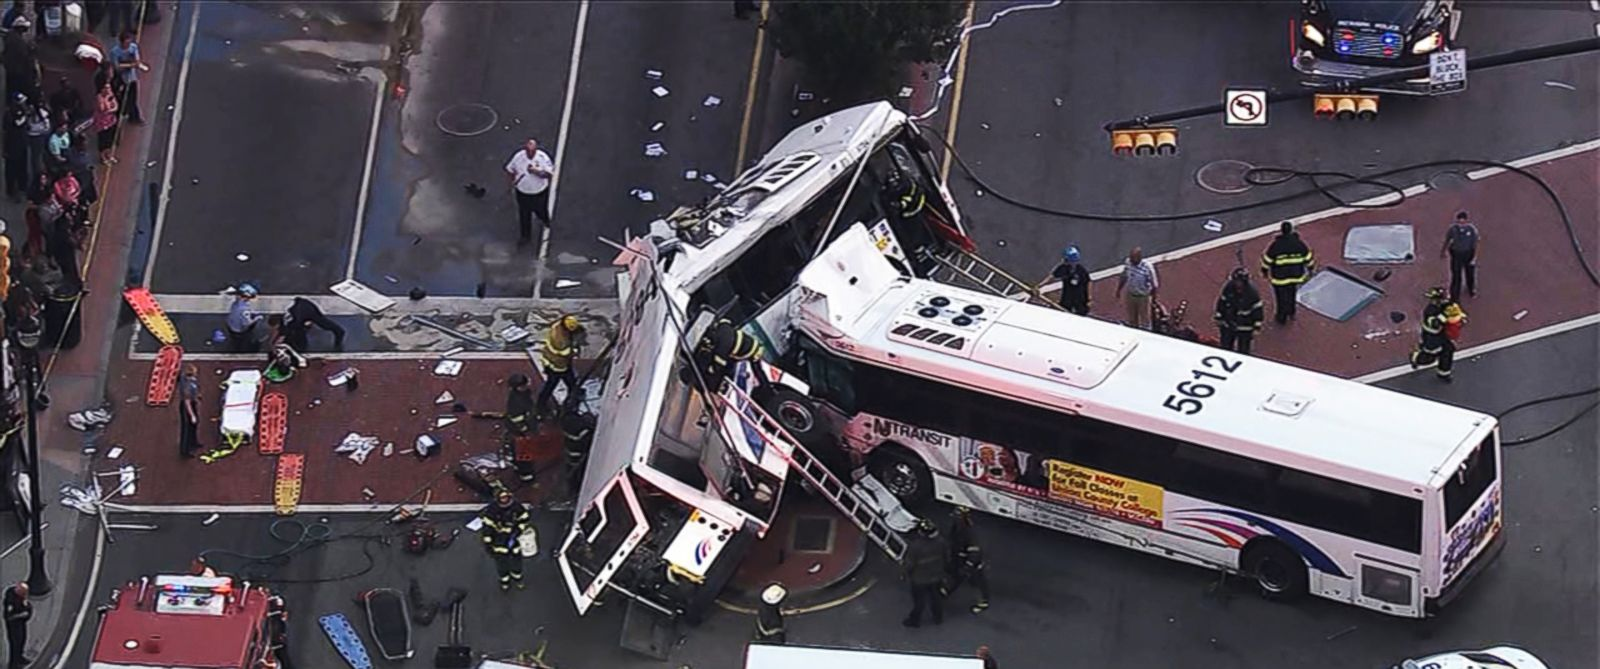 1 dead, 19 injured in bus collision in New Jersey